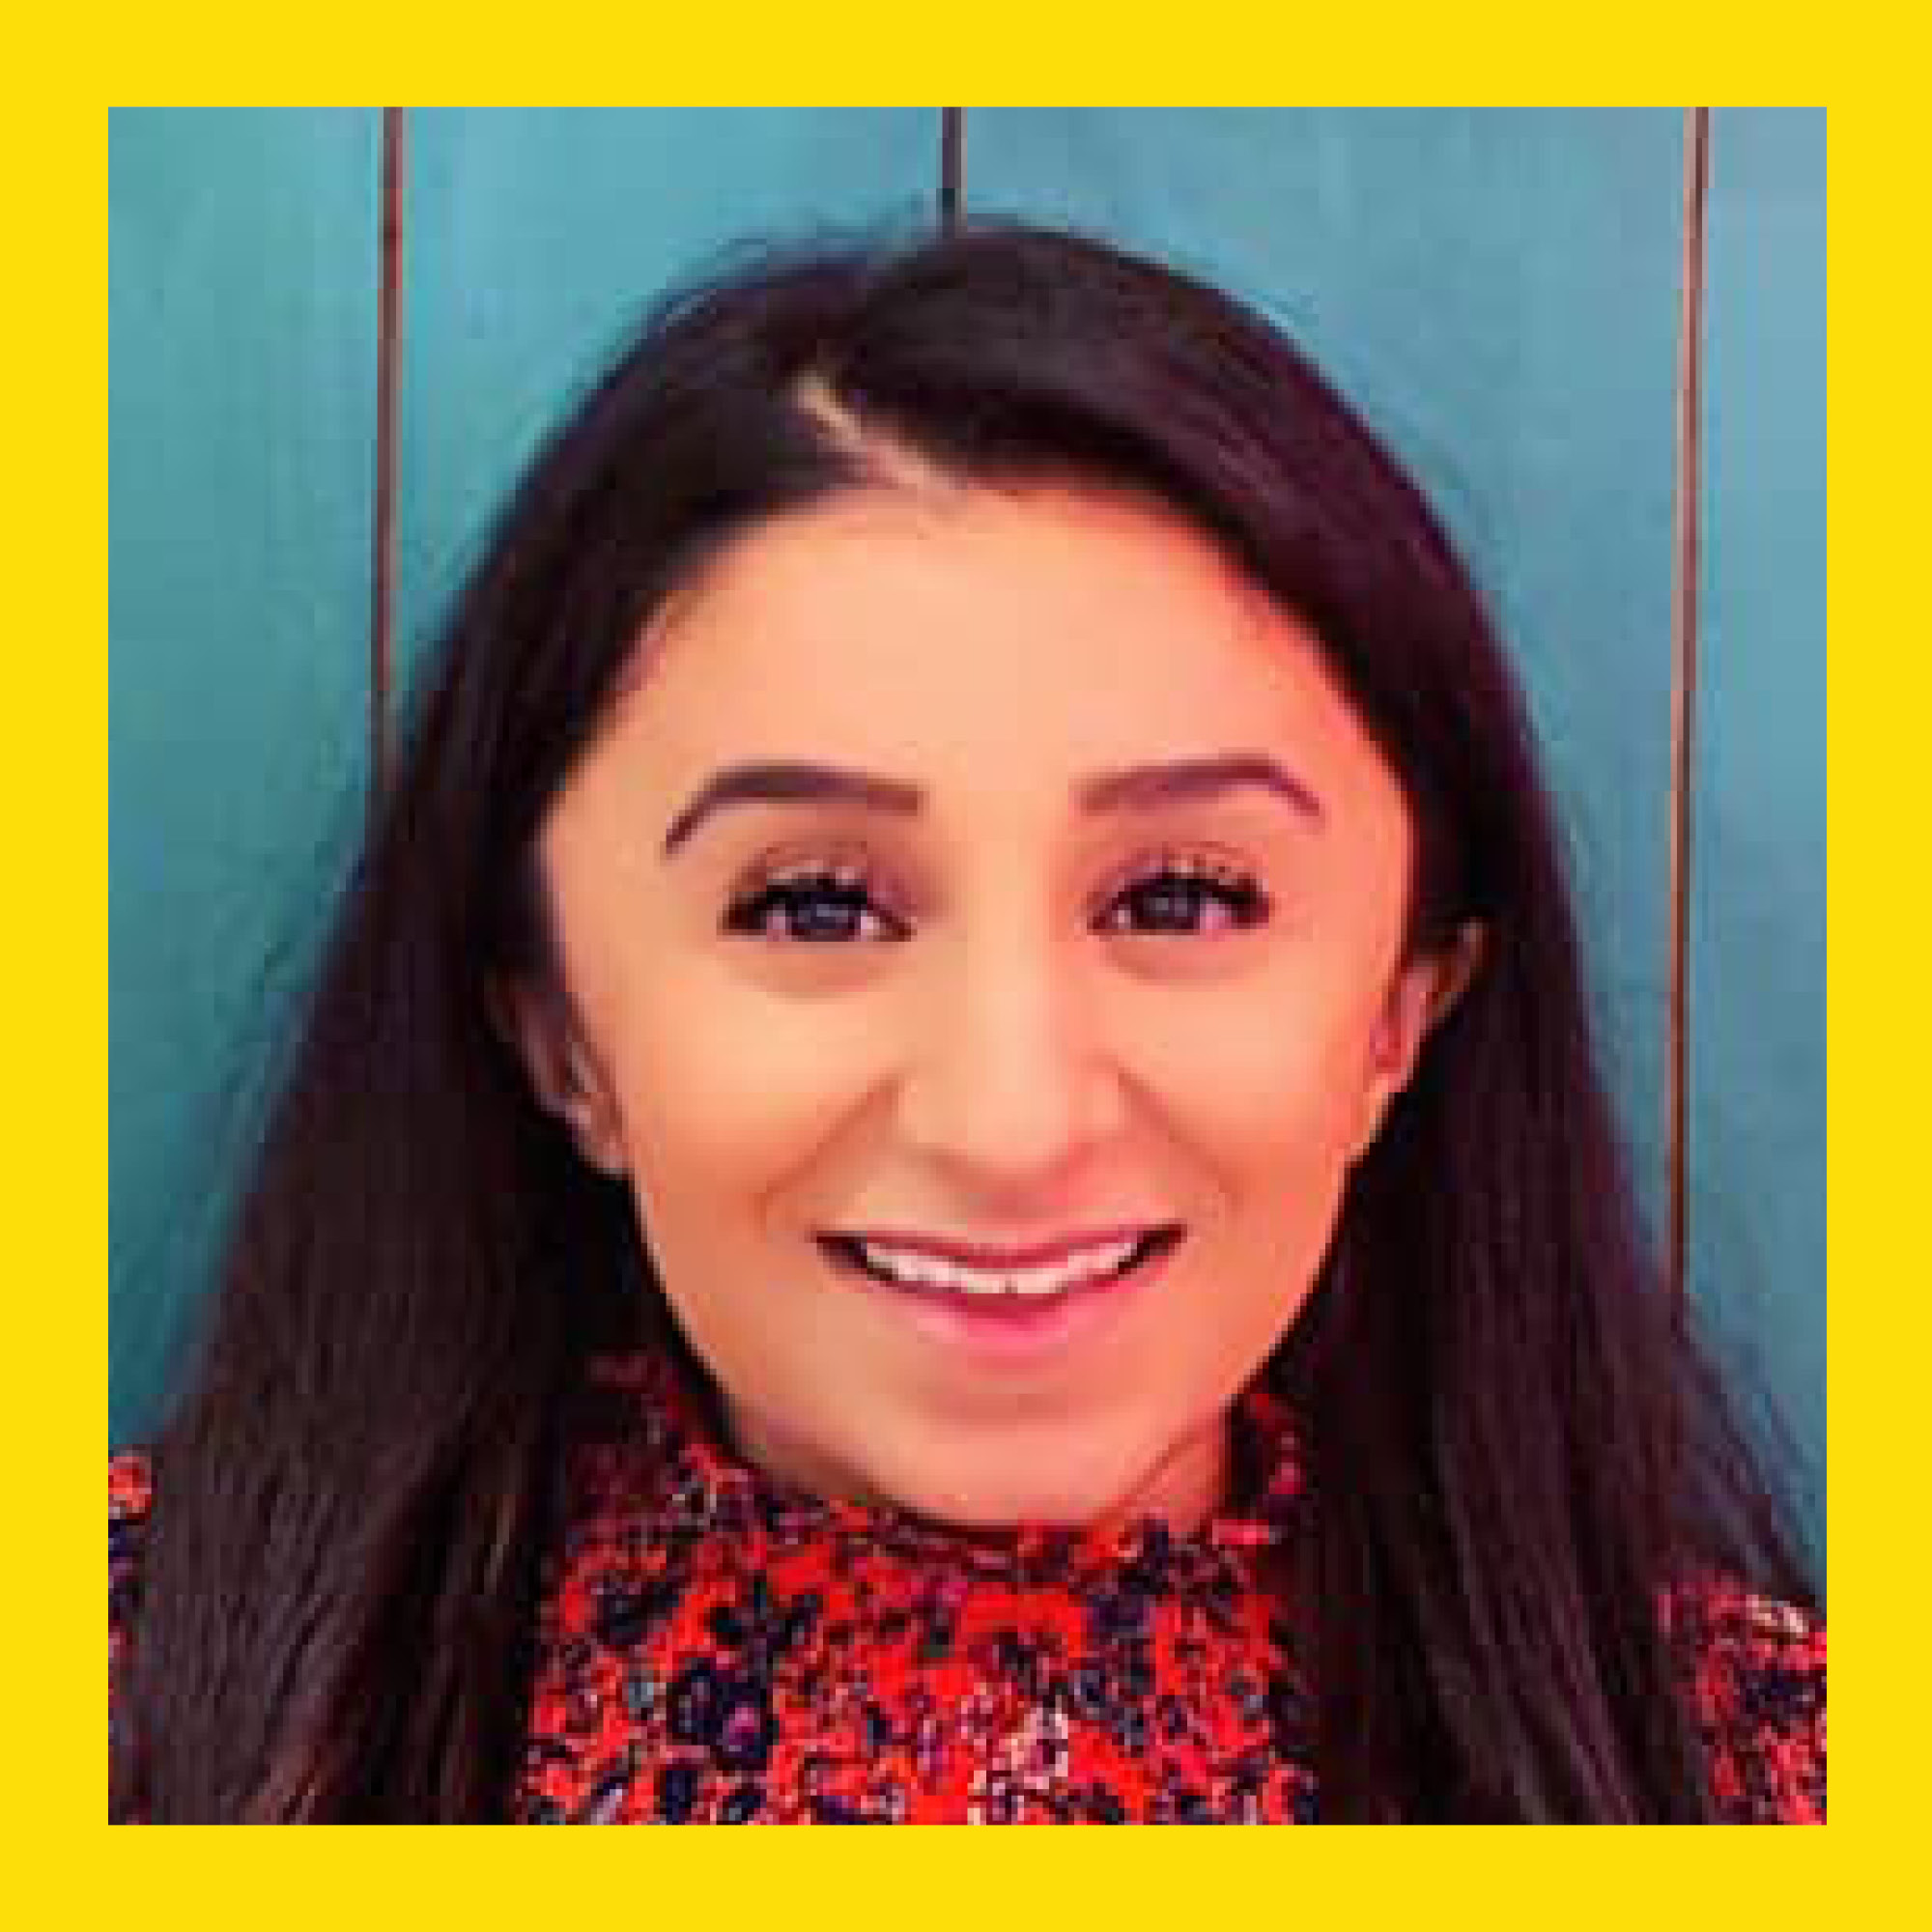 With her passion for creating everyday equality, Shani Dhanda is a business and culture change agent, social entrepreneur and disability rights advocate. Shani is the founder of The Diversability Card, the UK's first official discount card for disabled people, helping to reduce the financial pressure faced due to the extra costs of living with a disability. As part of her efforts to challenge perceptions and change attitudes around disability, Shani founded the Asian Disability Network to provide support and education to the Asian community on disability matters. Shani is Virgin Media's Disability Programme Manager, working to transform the experience for their disabled employees. Prior to this, Shani was an event manager for over 10 years and has recently founded the UK's first Asian Woman Festival, smashing stereotypes and stigma to empower and celebrate the female Asian identity. In addition to being a speaker and columnist on disability and inclusion matters, Shani holds several non-executive roles with regional and international charities and is one of the most influential disabled people in Britain, Shaw Trust Power List 2018. -